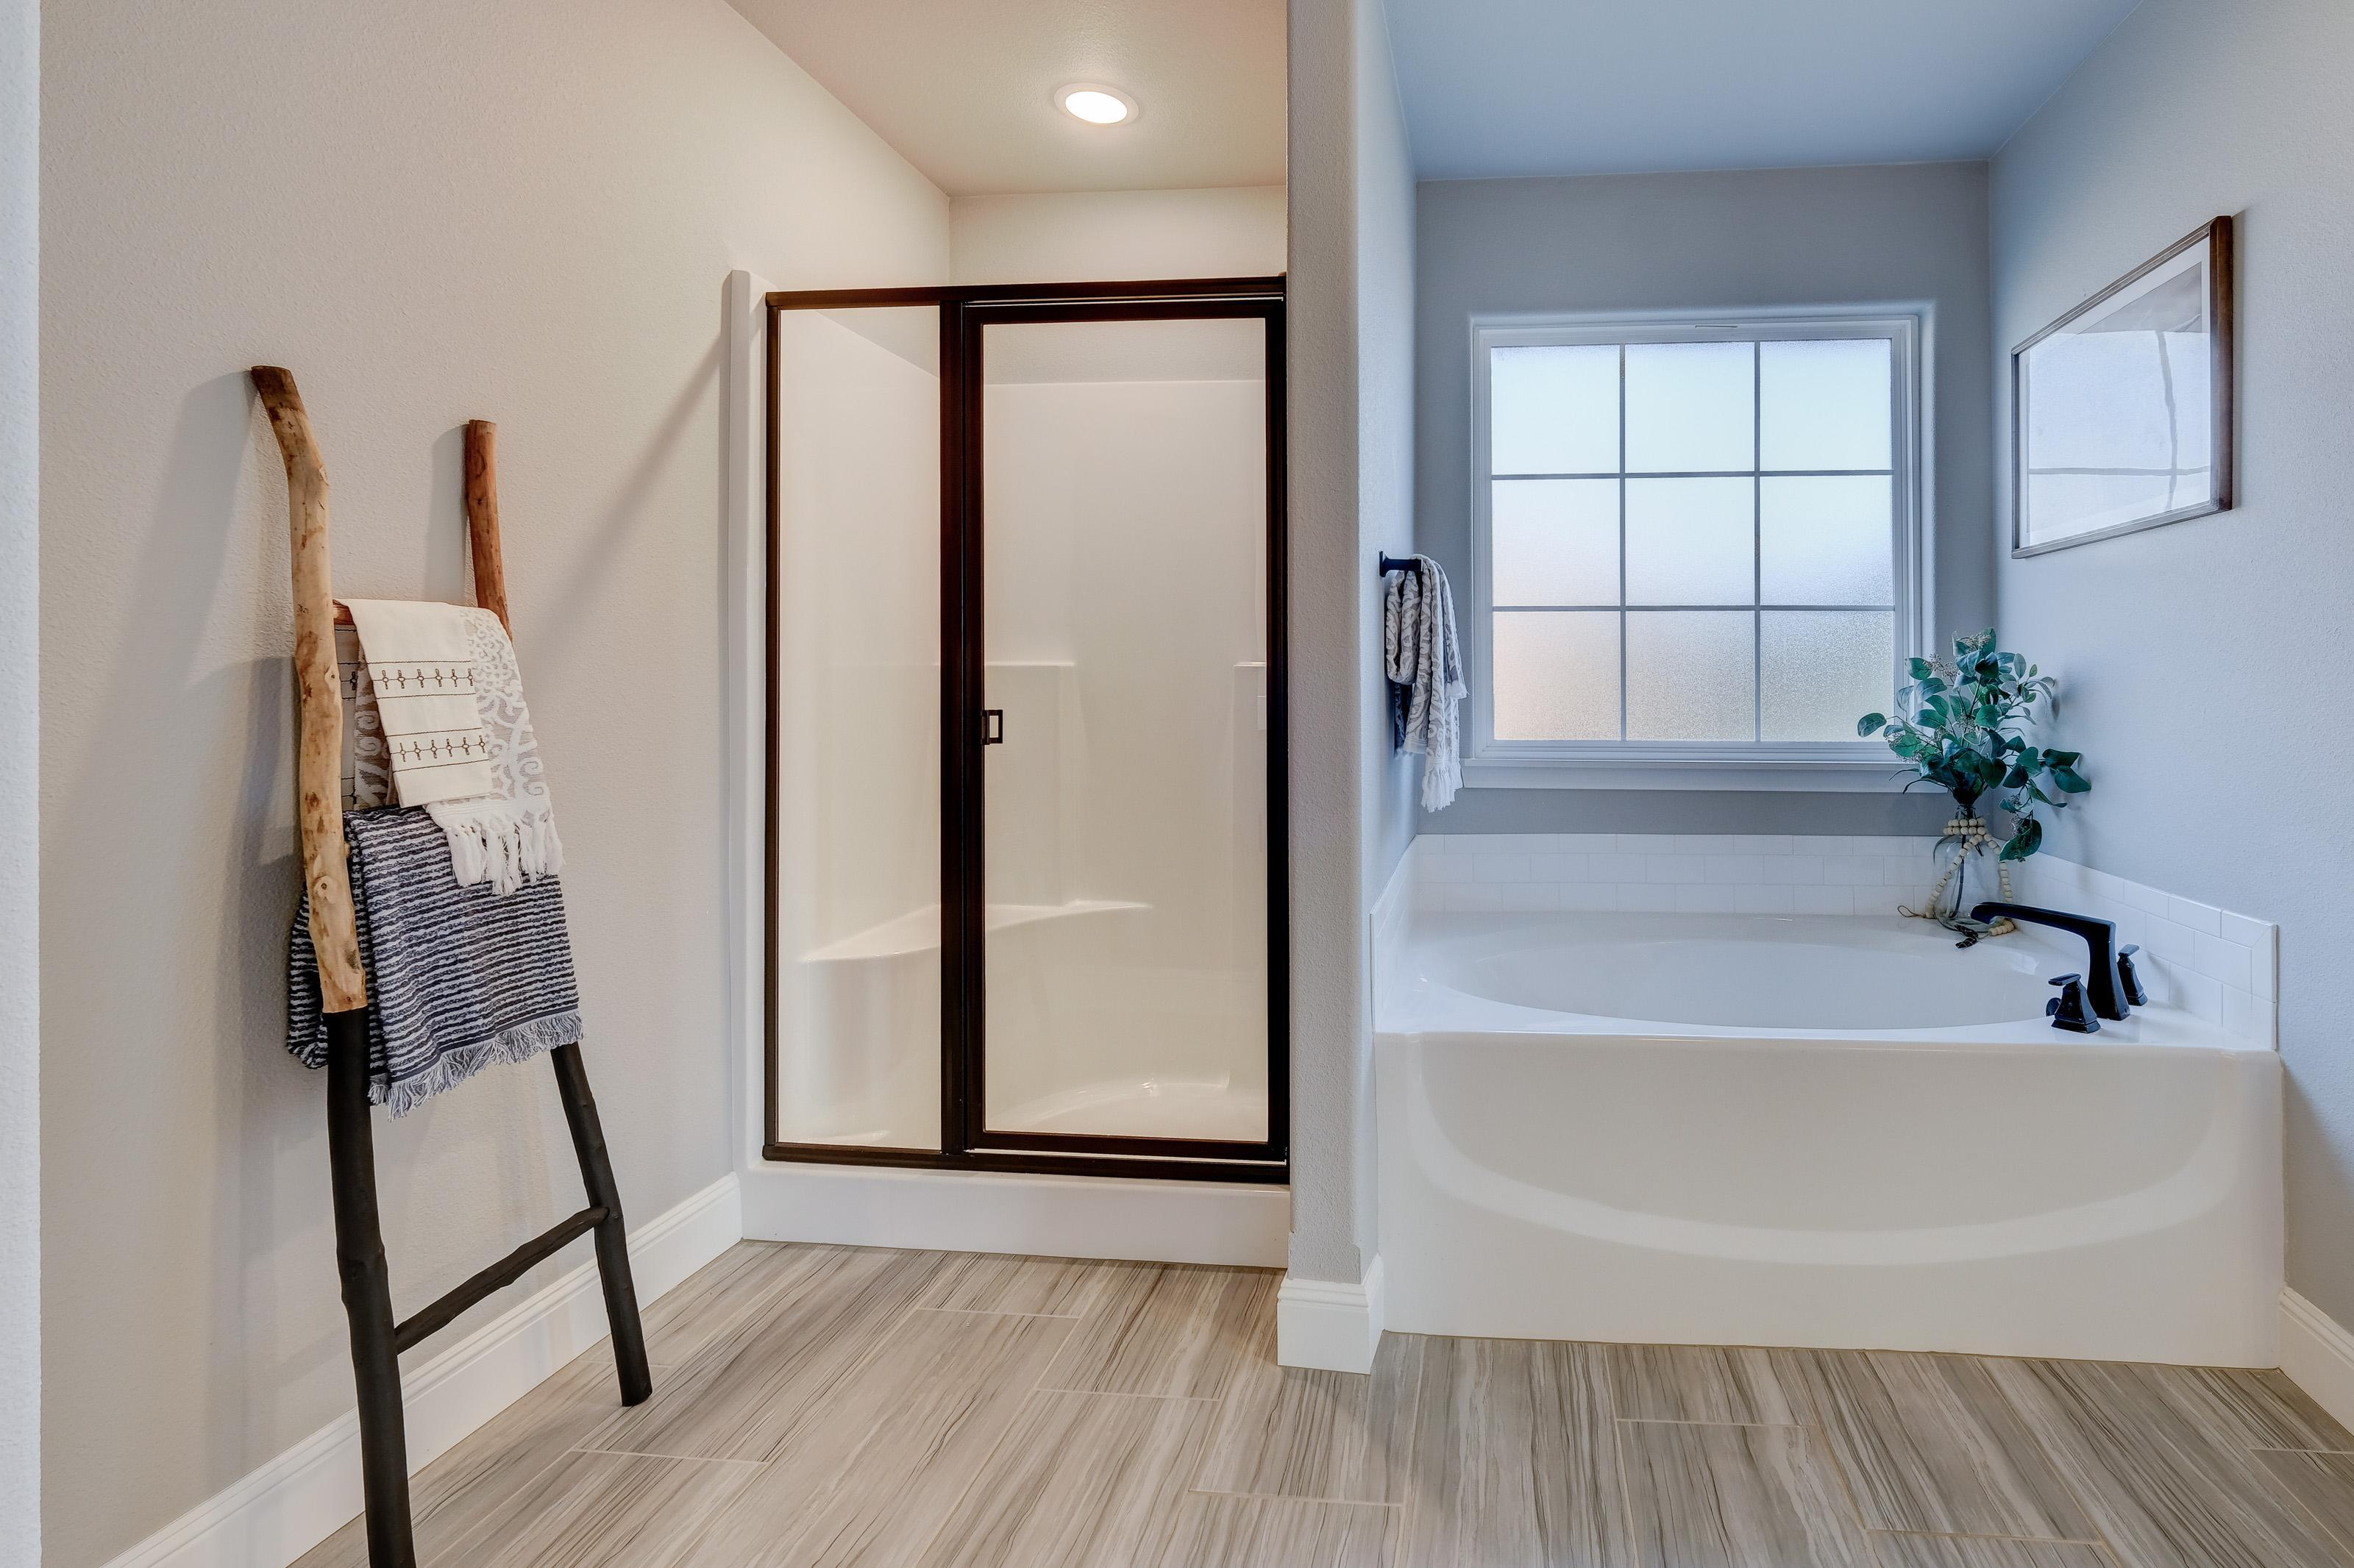 Bathroom featured in the 2050KP Series By Schuber Mitchell Homes in Fayetteville, AR